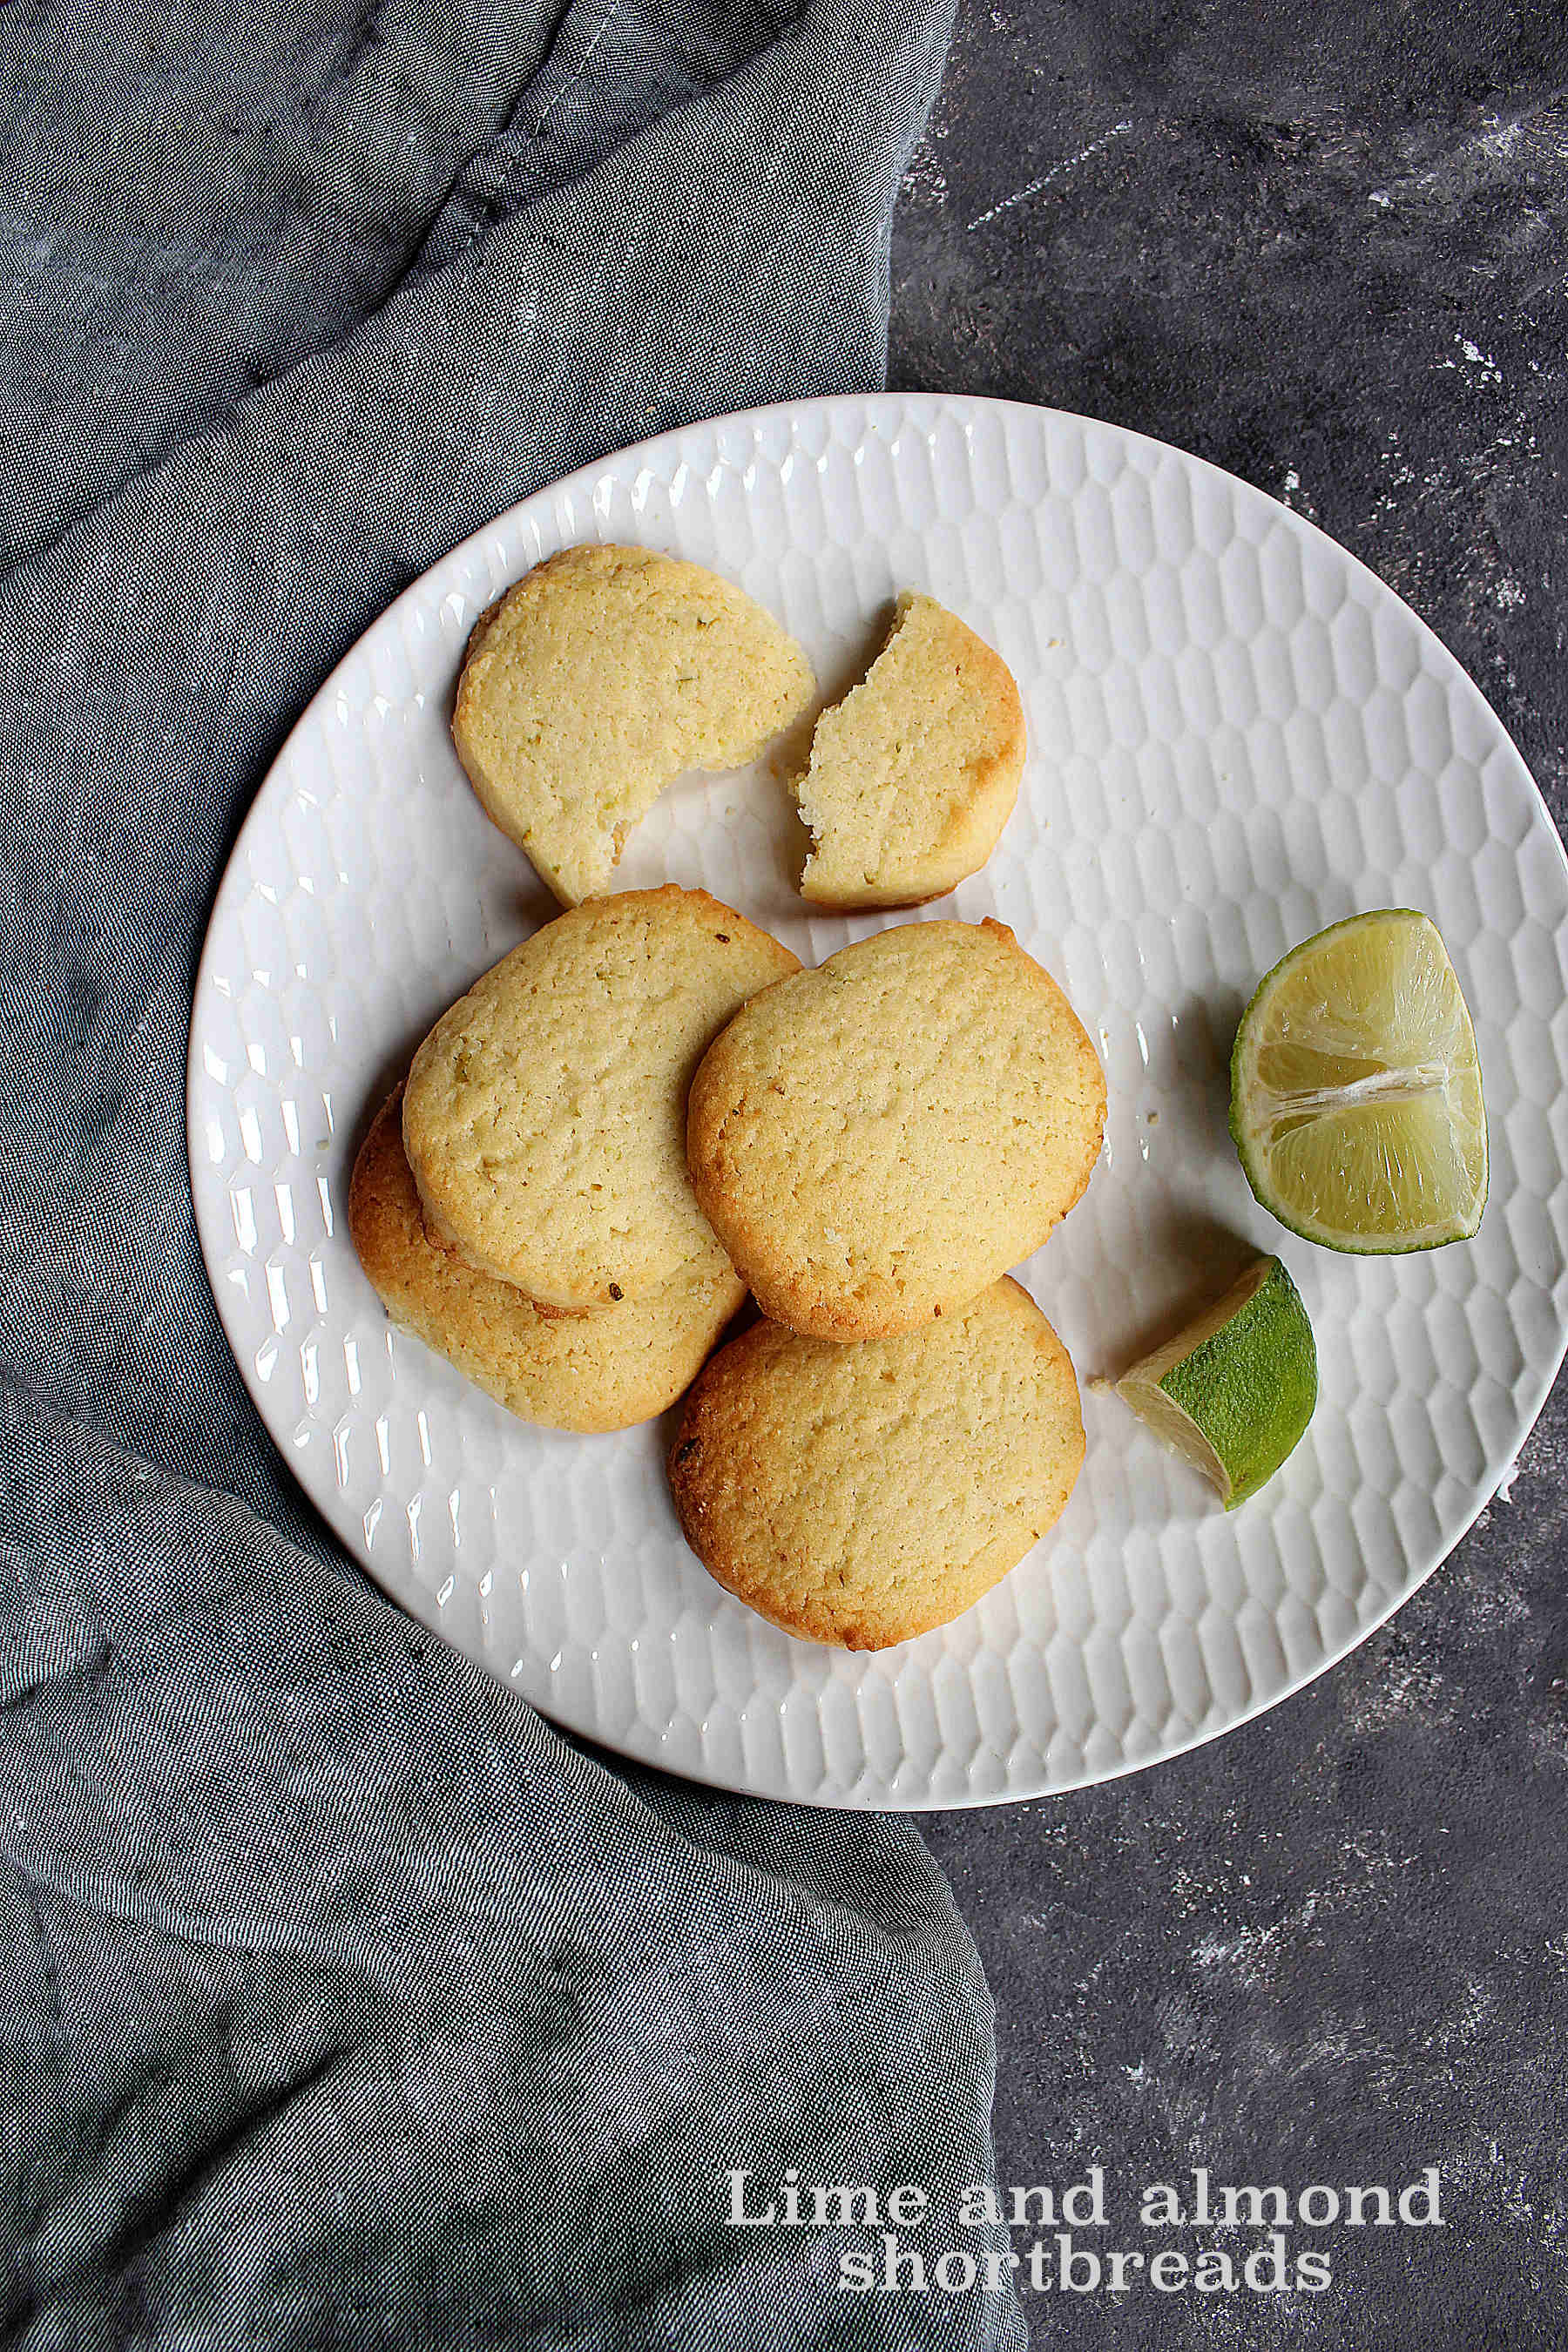 Lime and almond shortbreads